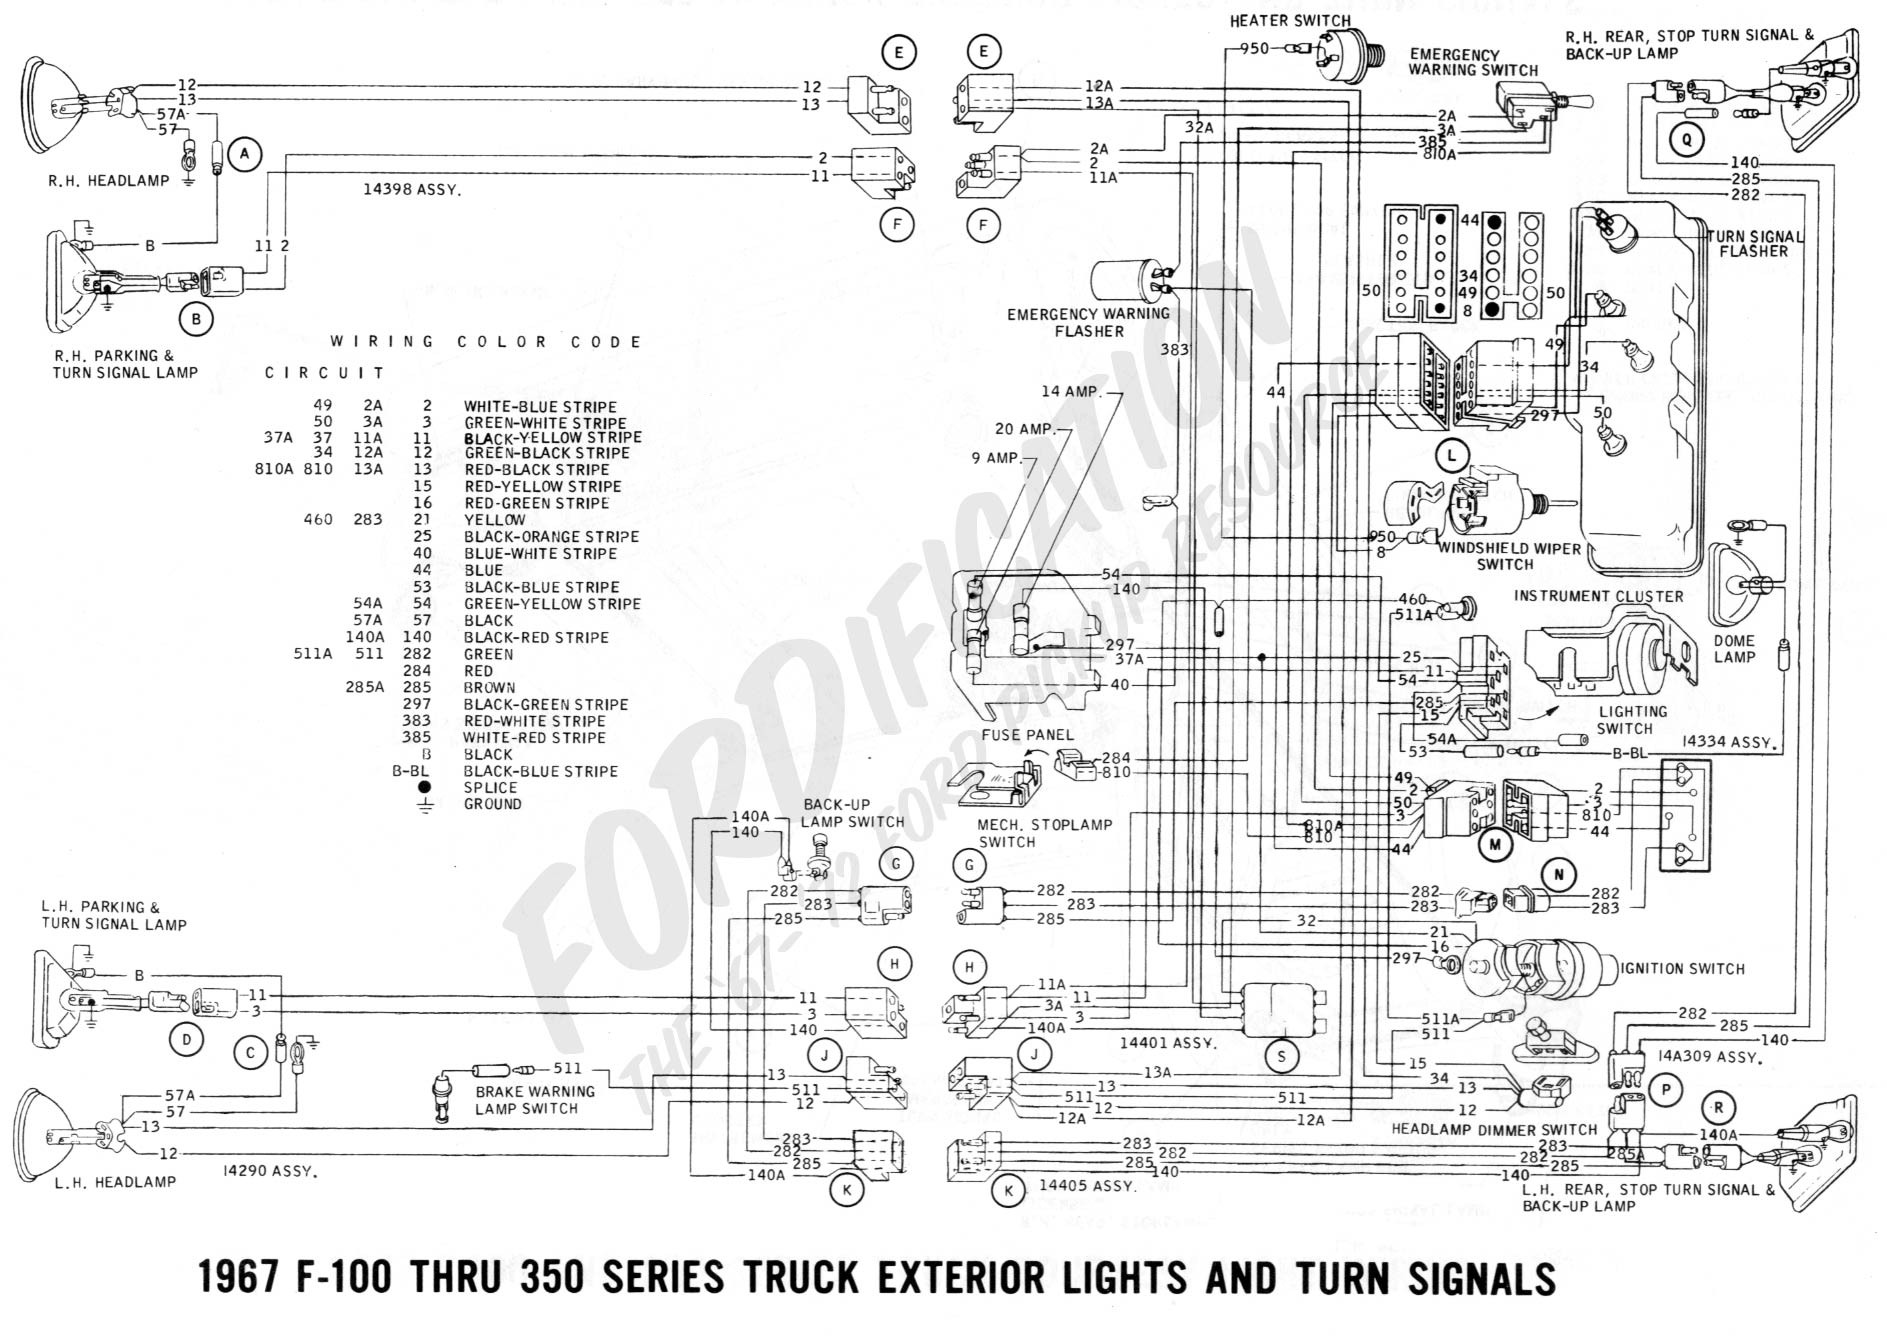 wrg 7916] 1967 ford bronco wiring diagram1967 ford bronco wiring diagram